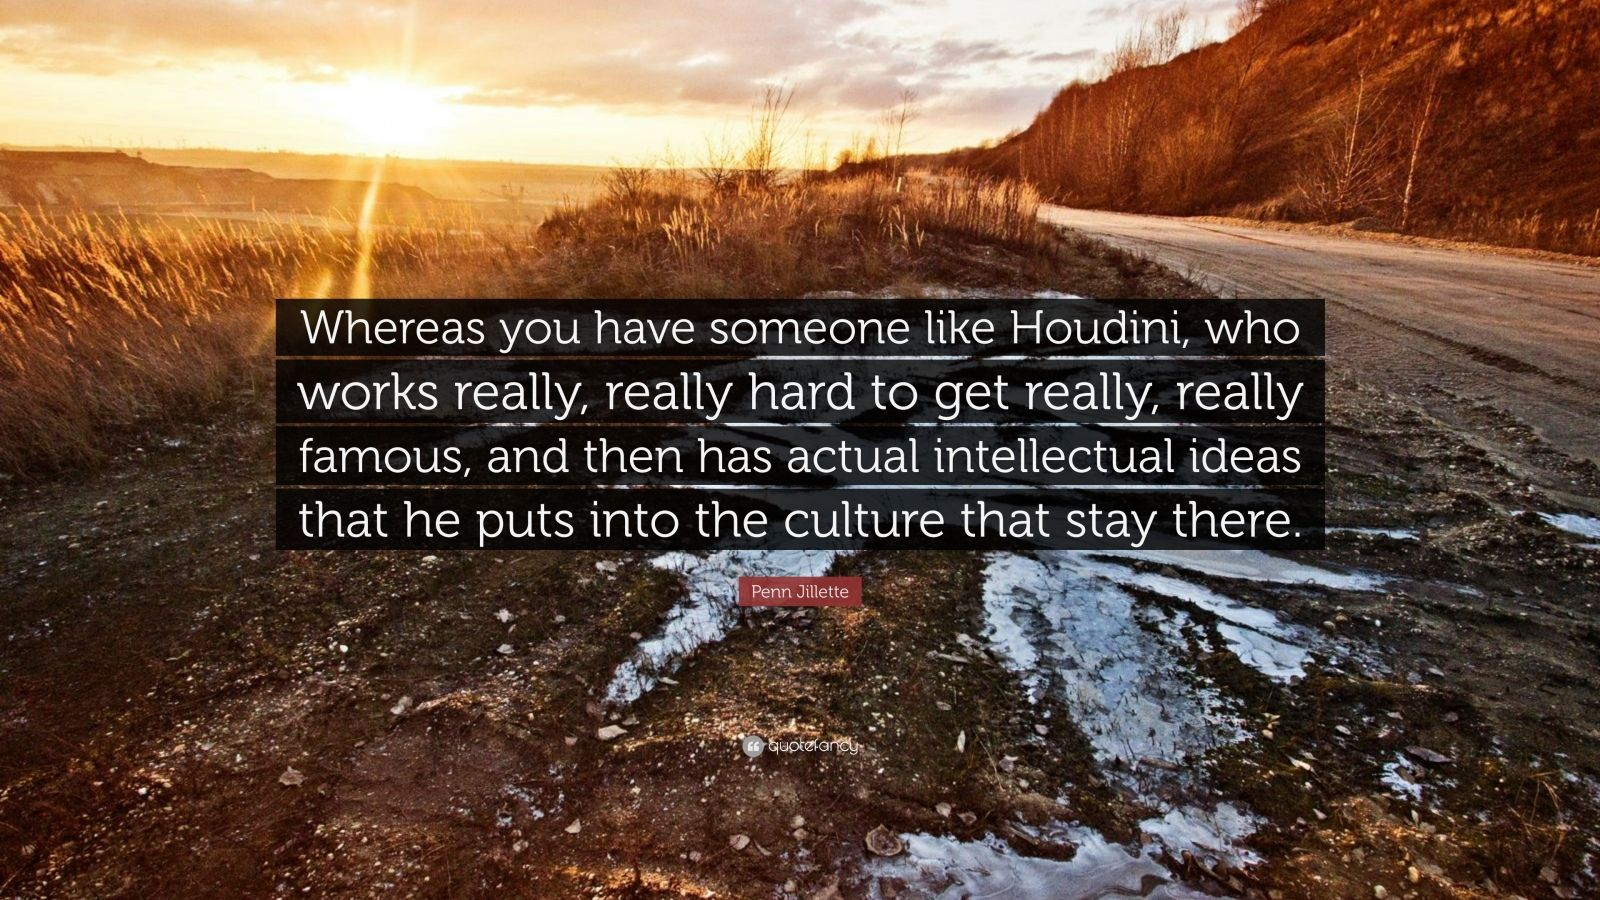 """Penn Jillette Quote: """"Whereas you have someone like Houdini, who works really, really hard to get really, really famous, and then has actual intellectual ideas that he puts into the culture that stay there."""""""